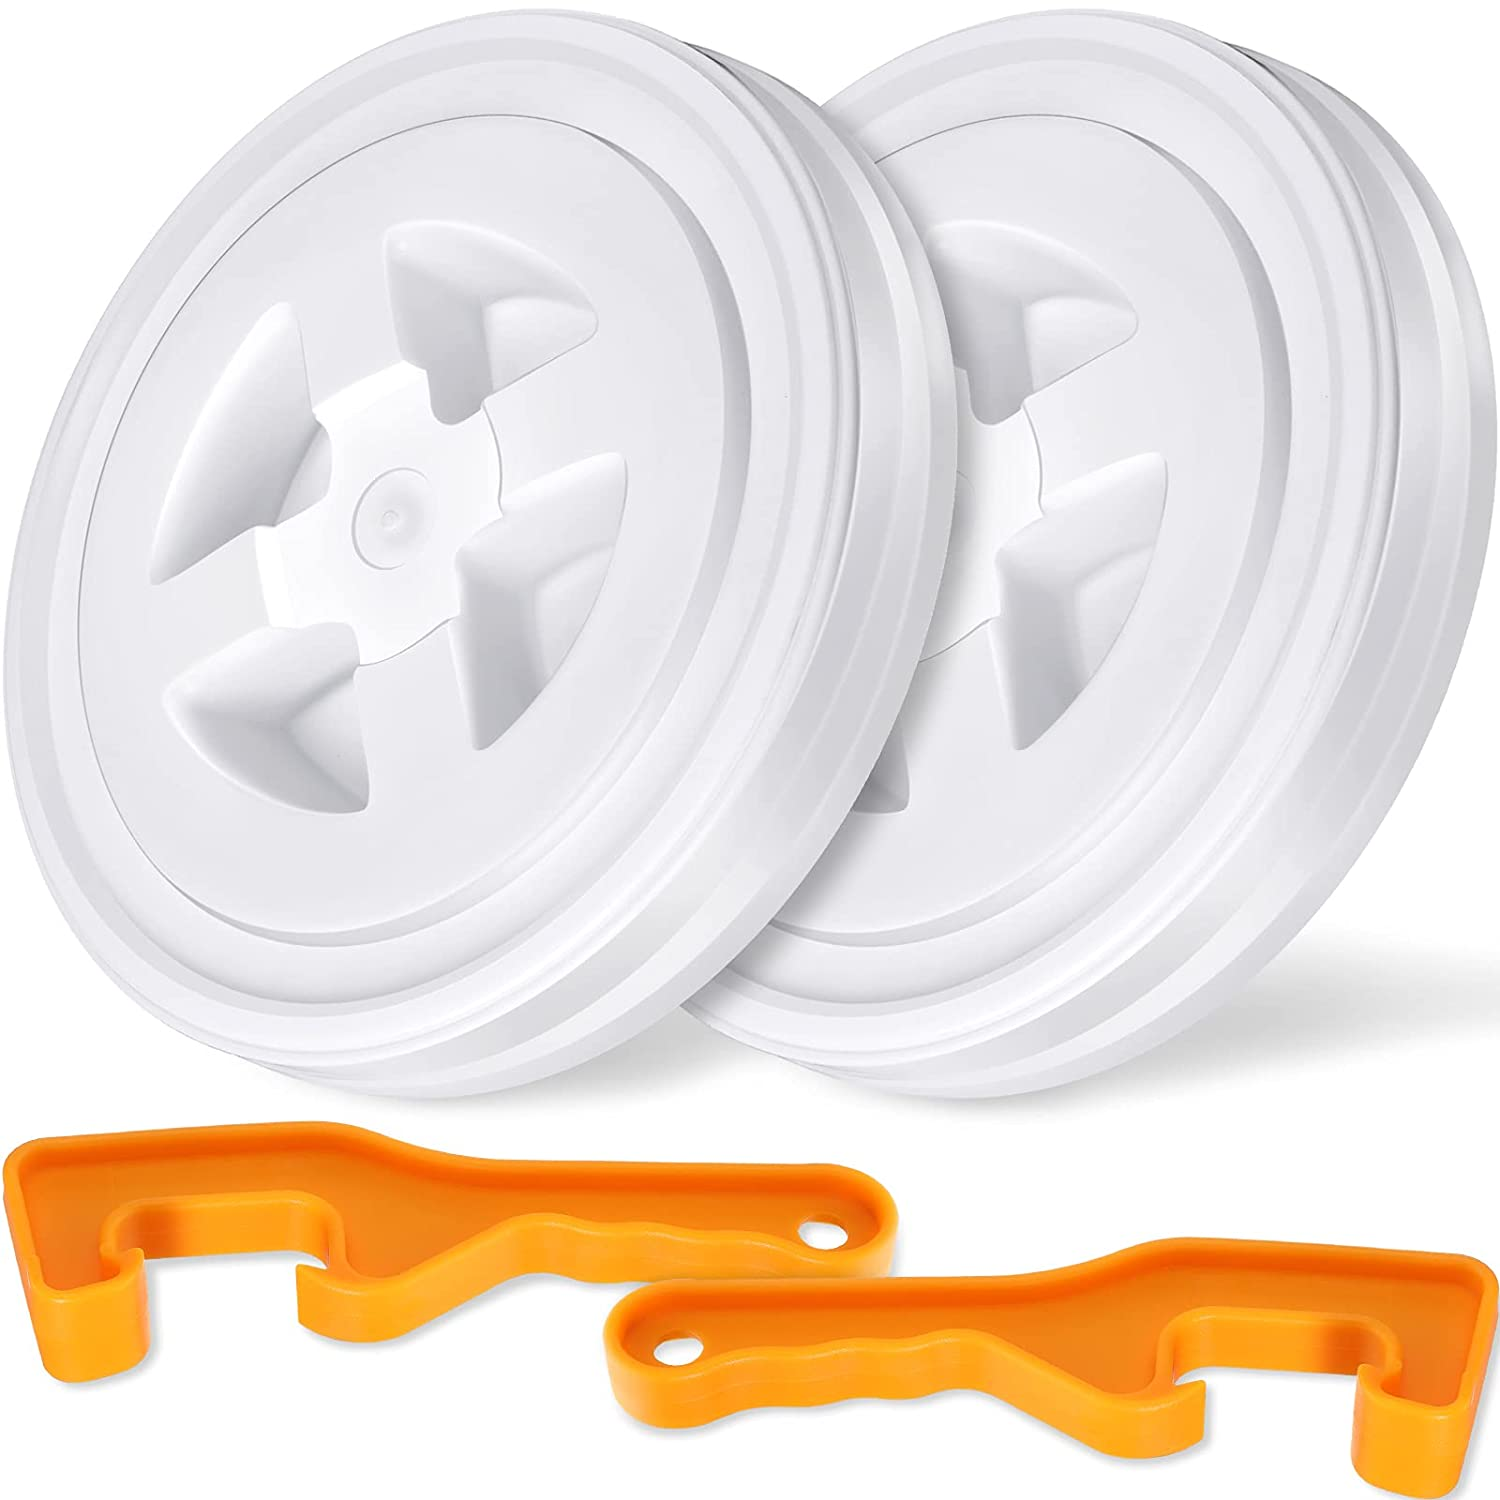 2 Pieces 5 Gallon Screw Cap Leak-Proof Bucket Seal Lids and 2 Pieces 5 Gallon Paint Can Openers for Plastic Storage Buckets, White and Orange